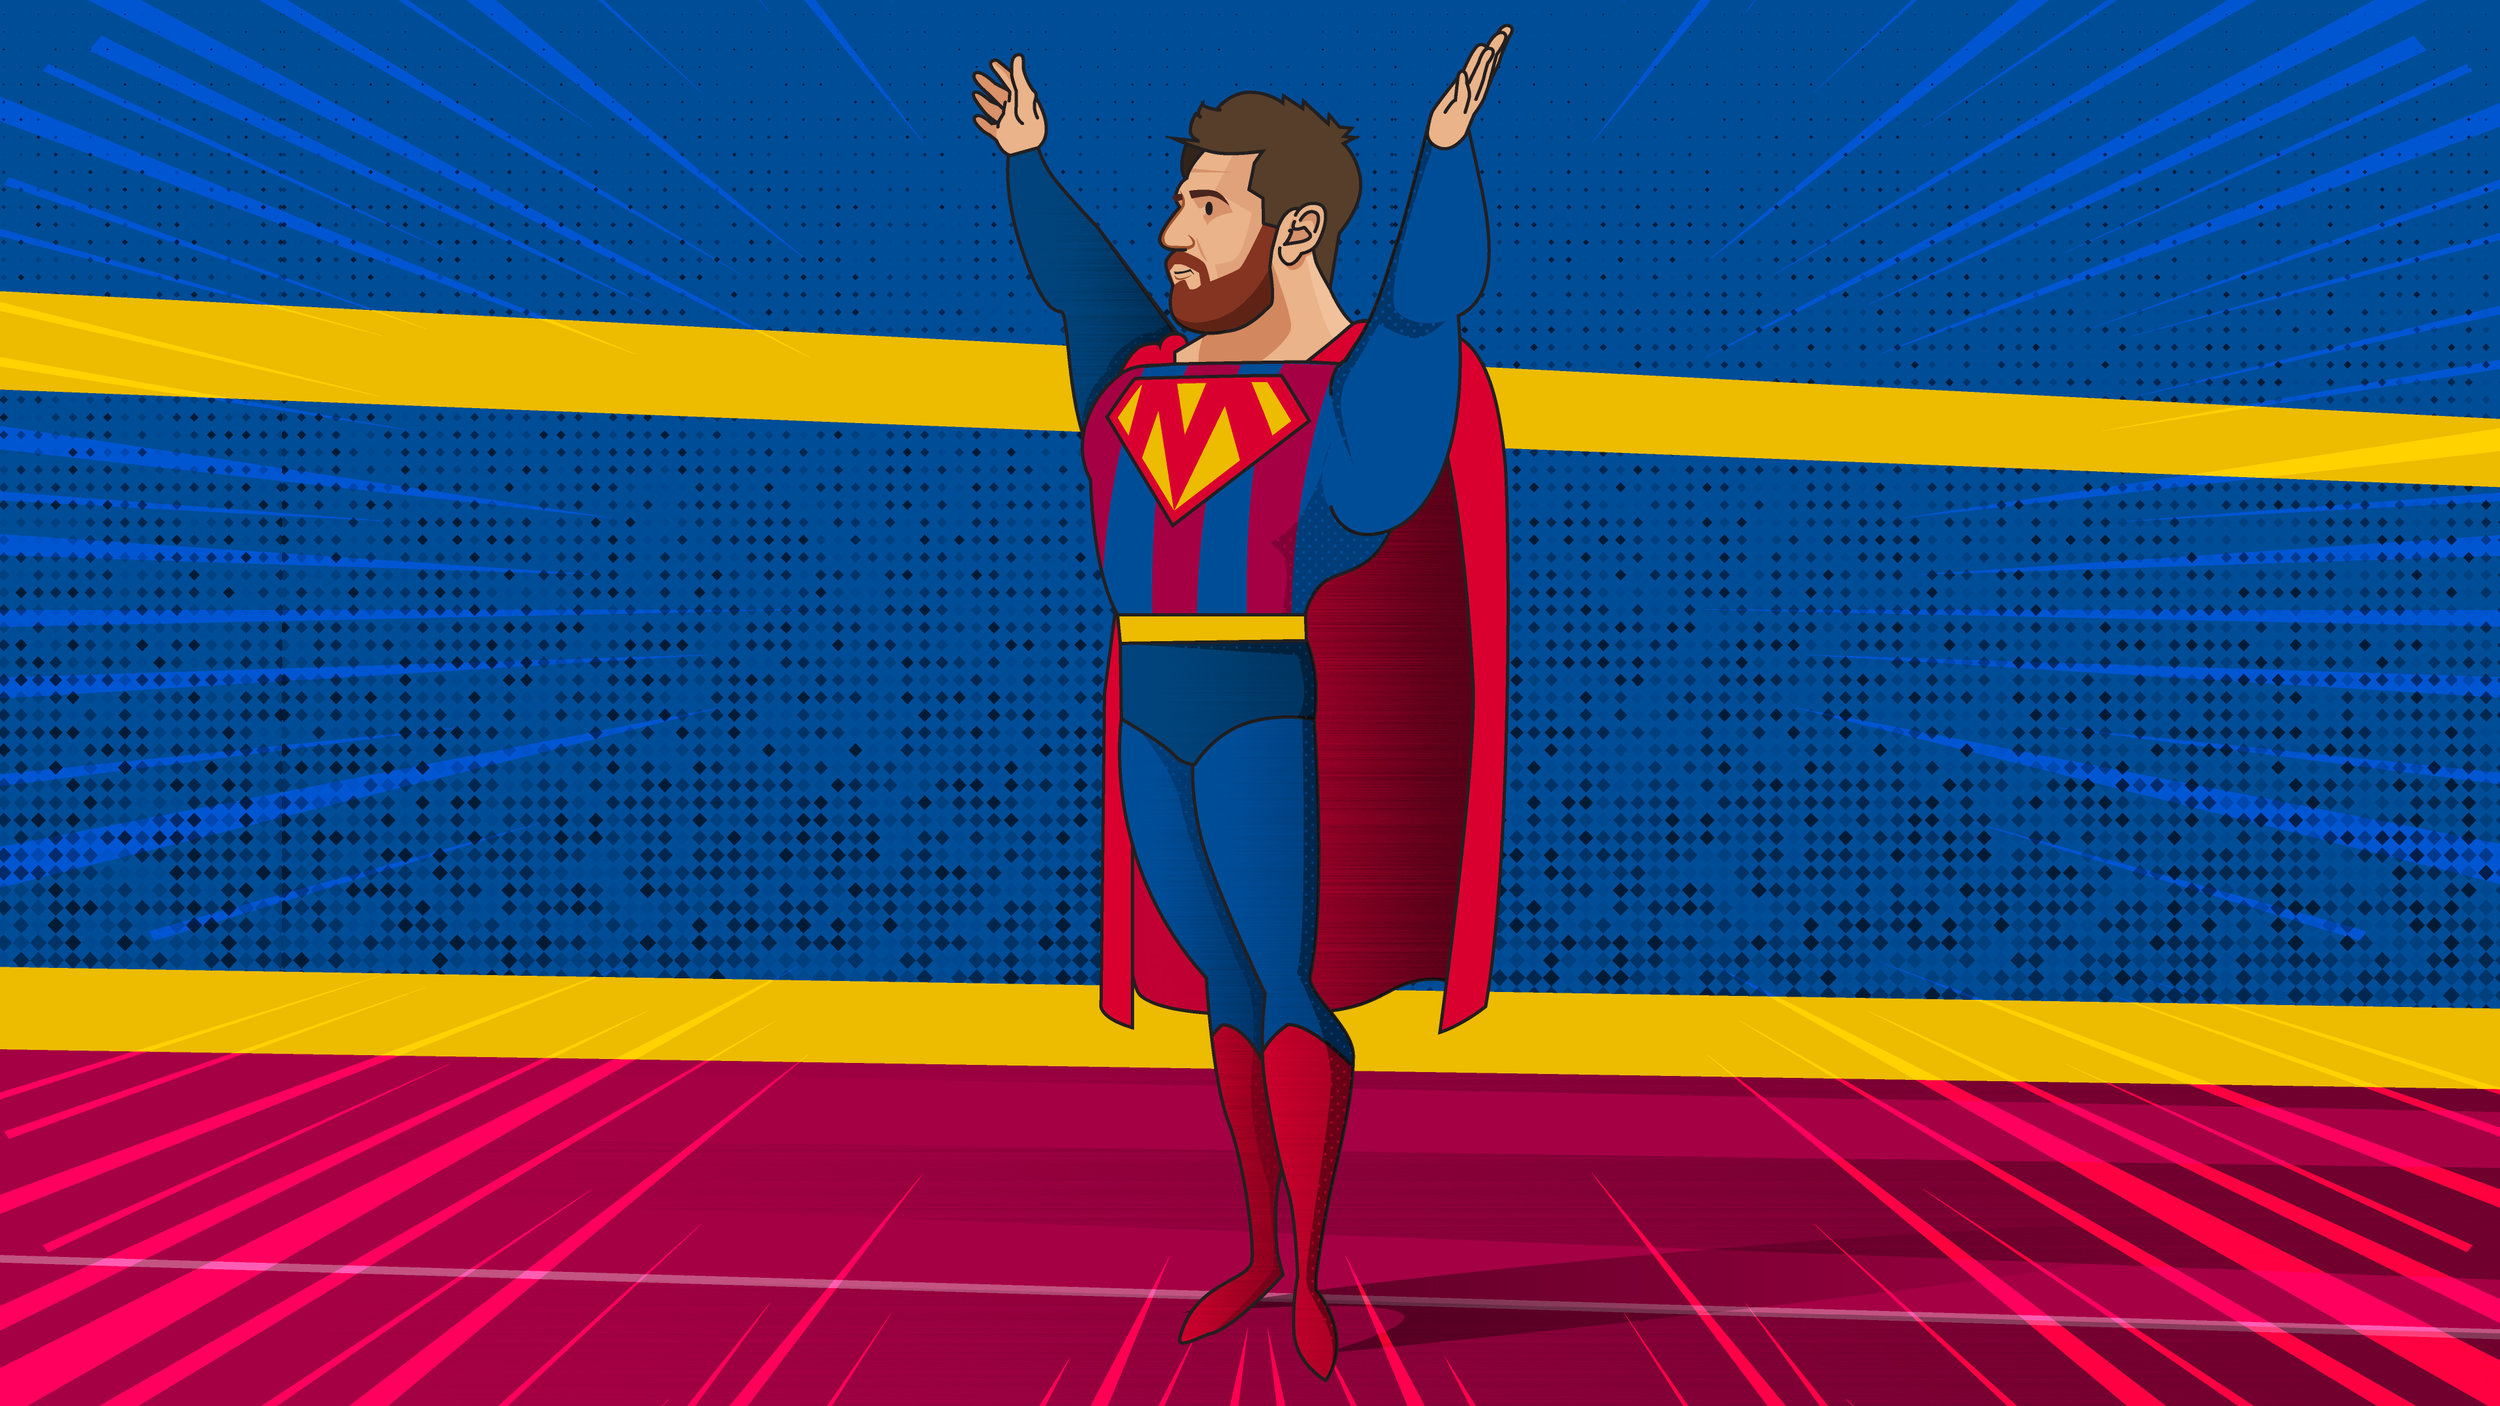 Messi-Superman-2.jpg